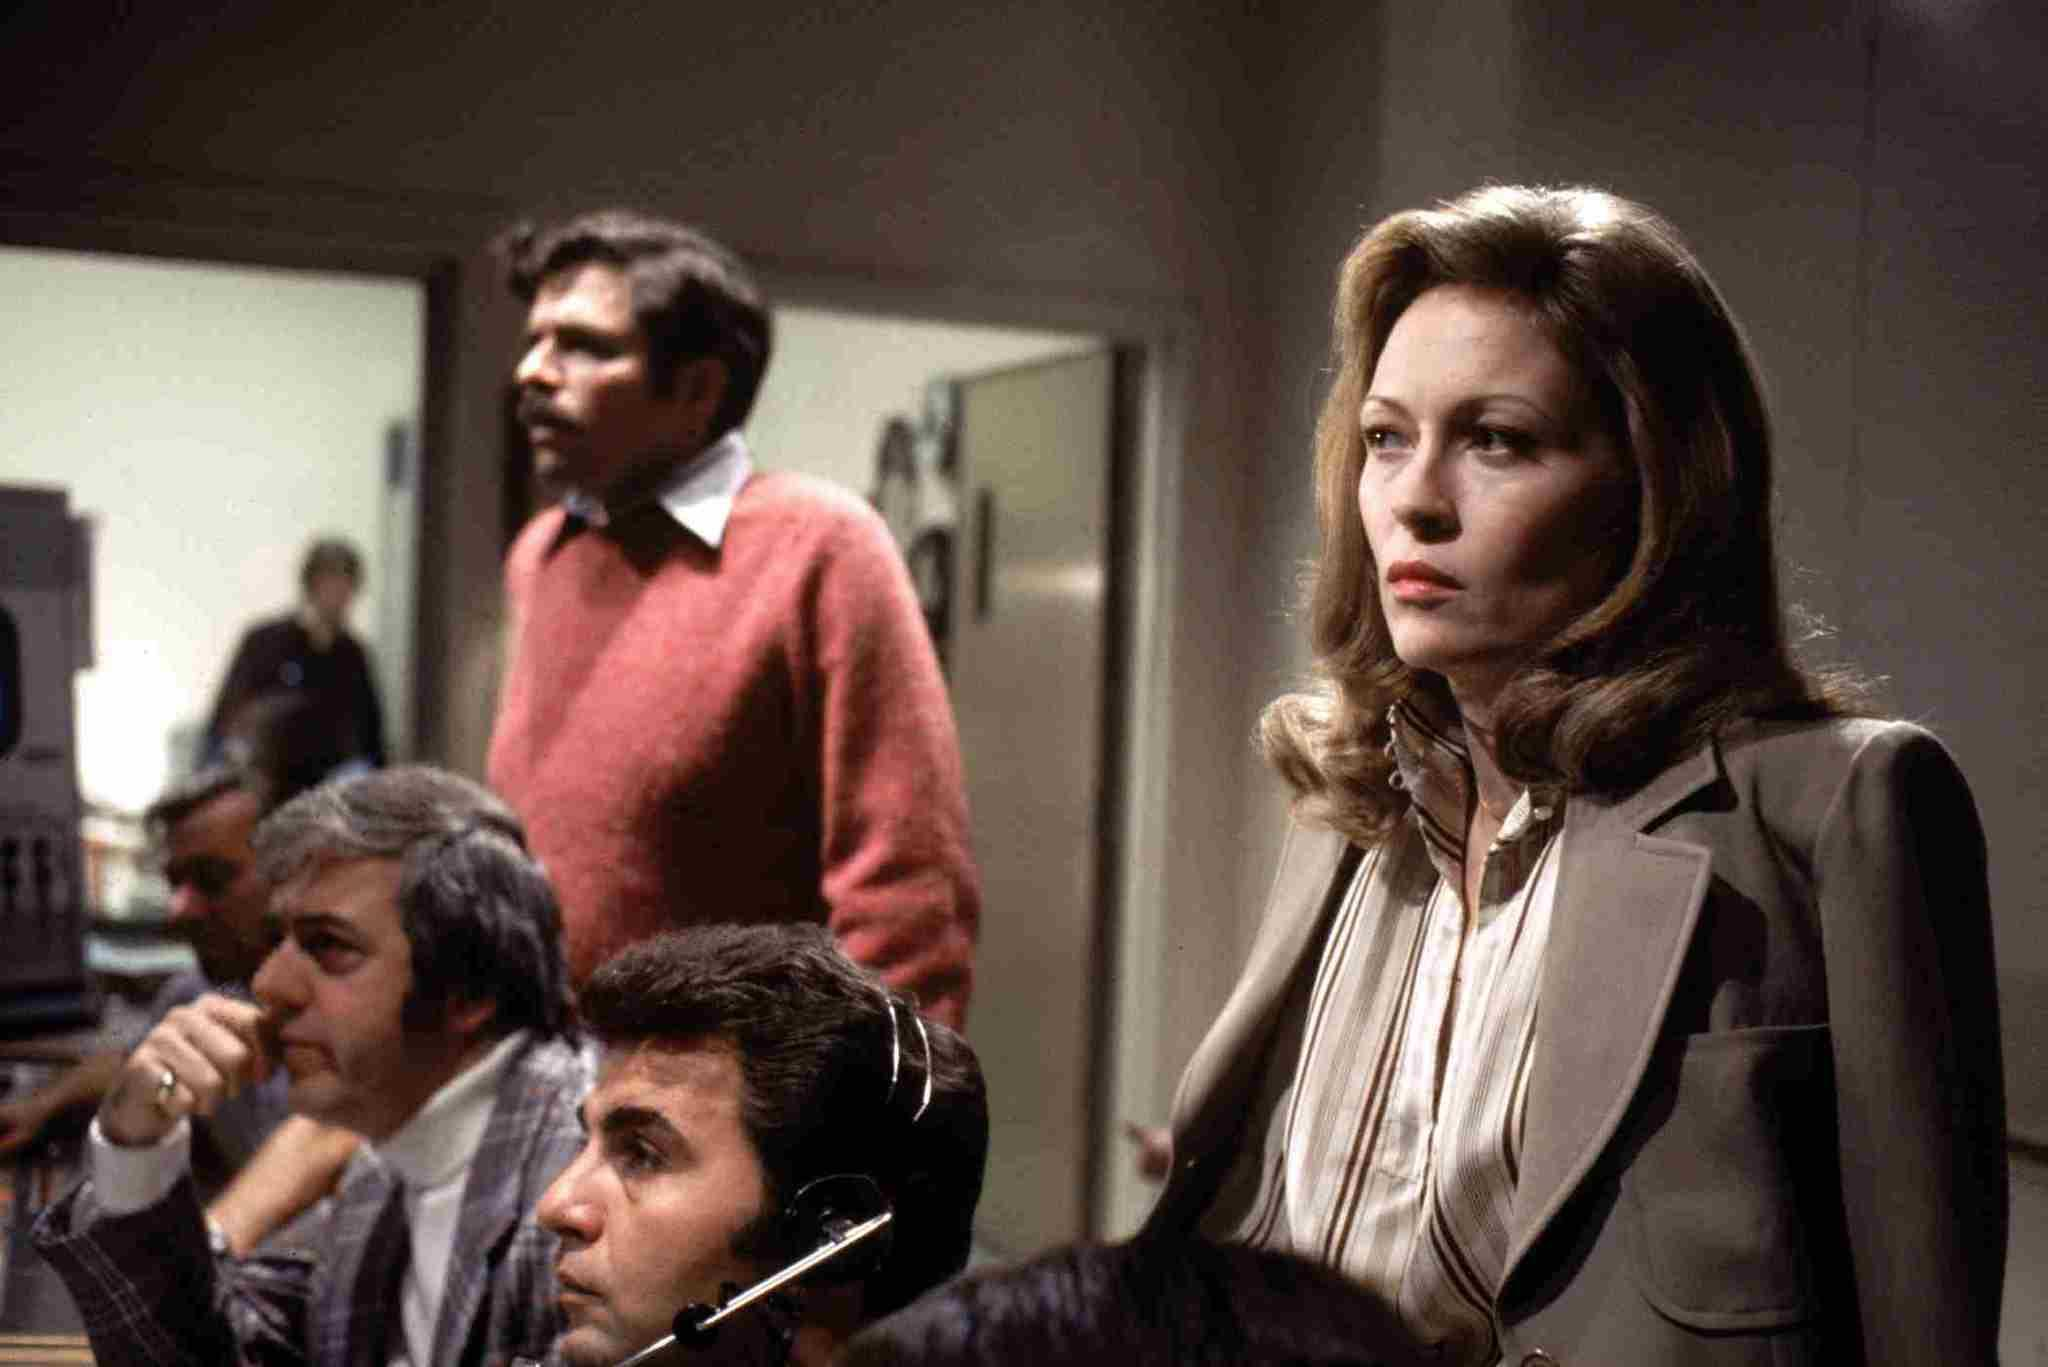 Faye dunaway in network 1976 large picture